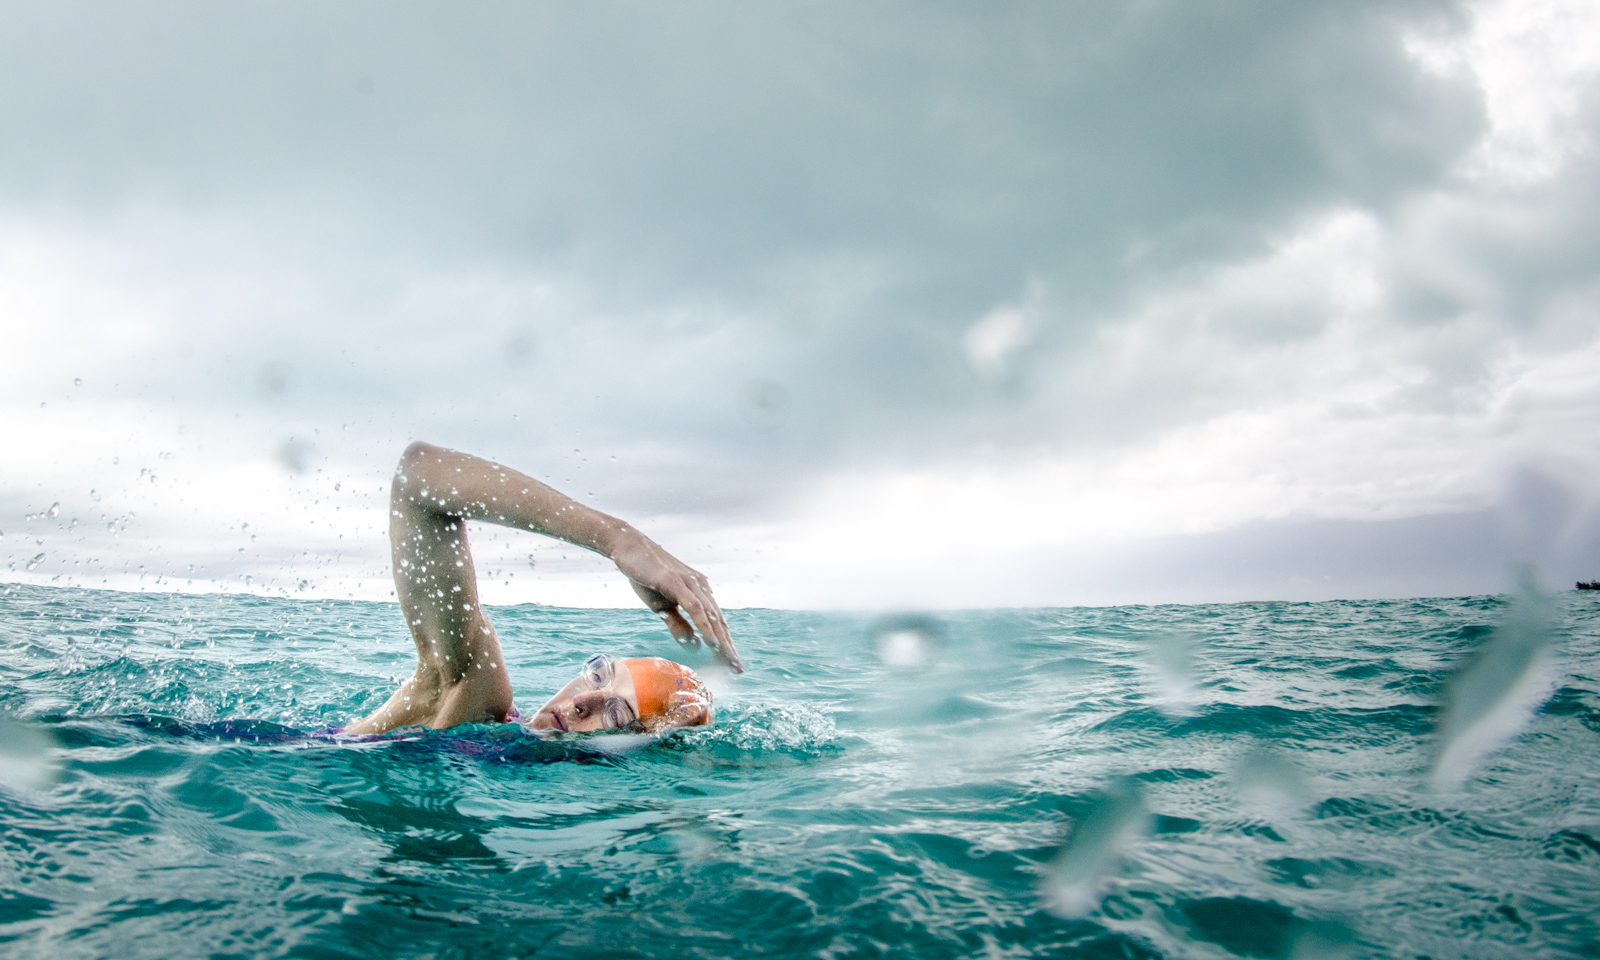 """Heather Perry's """"underwater"""" image featuring a swimmer in a storm in what looks like an ocean with crystal clear blue waters for SwimVacation"""